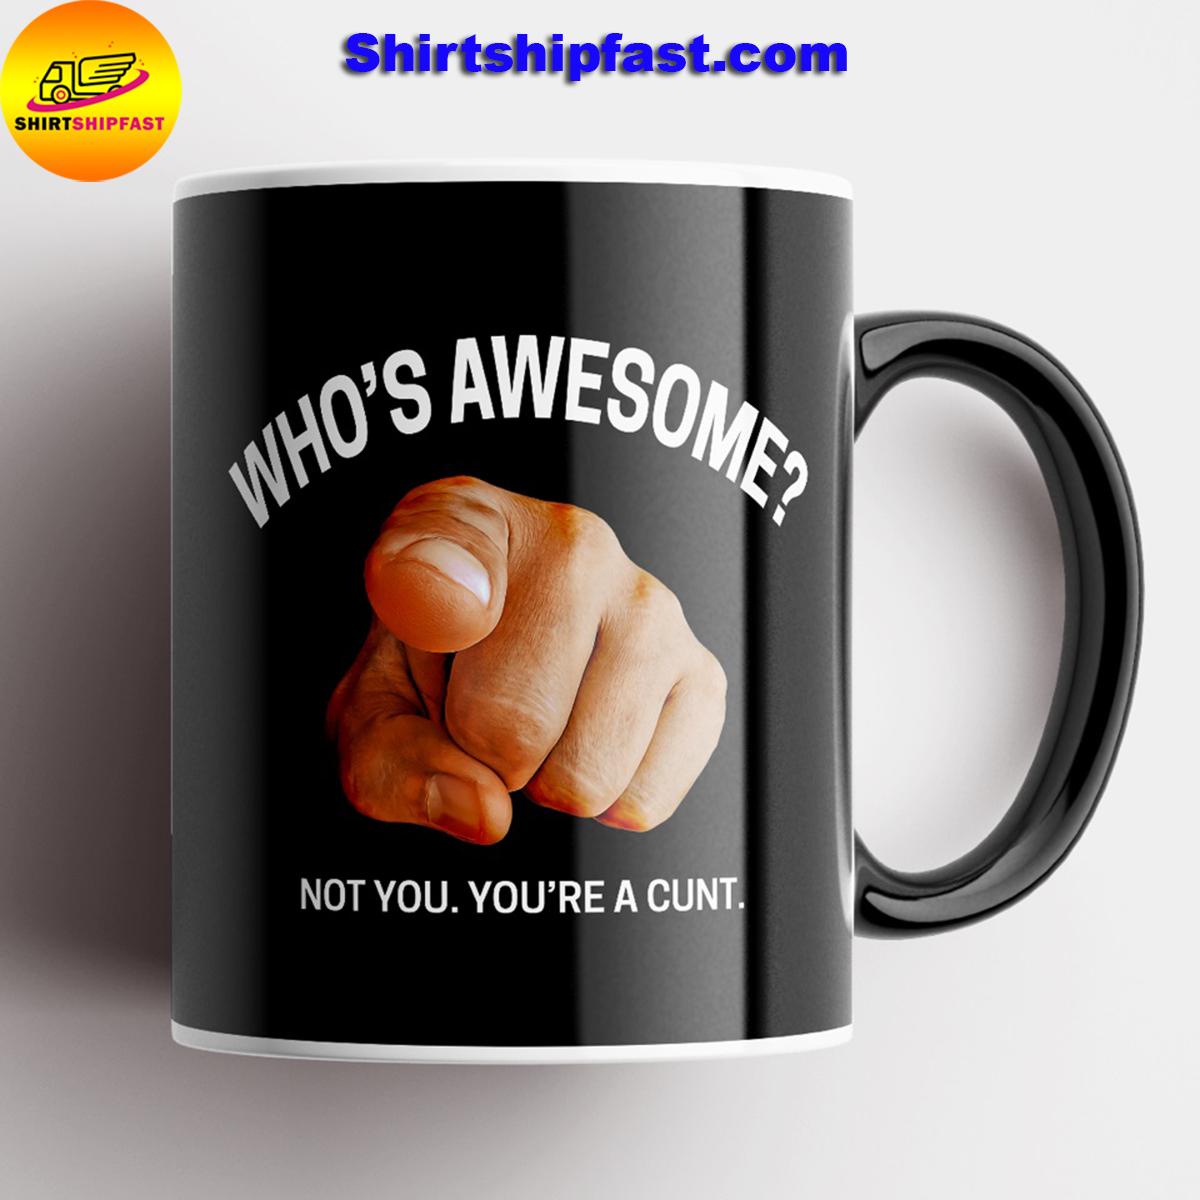 Who's awesome not you you're a cunt mug